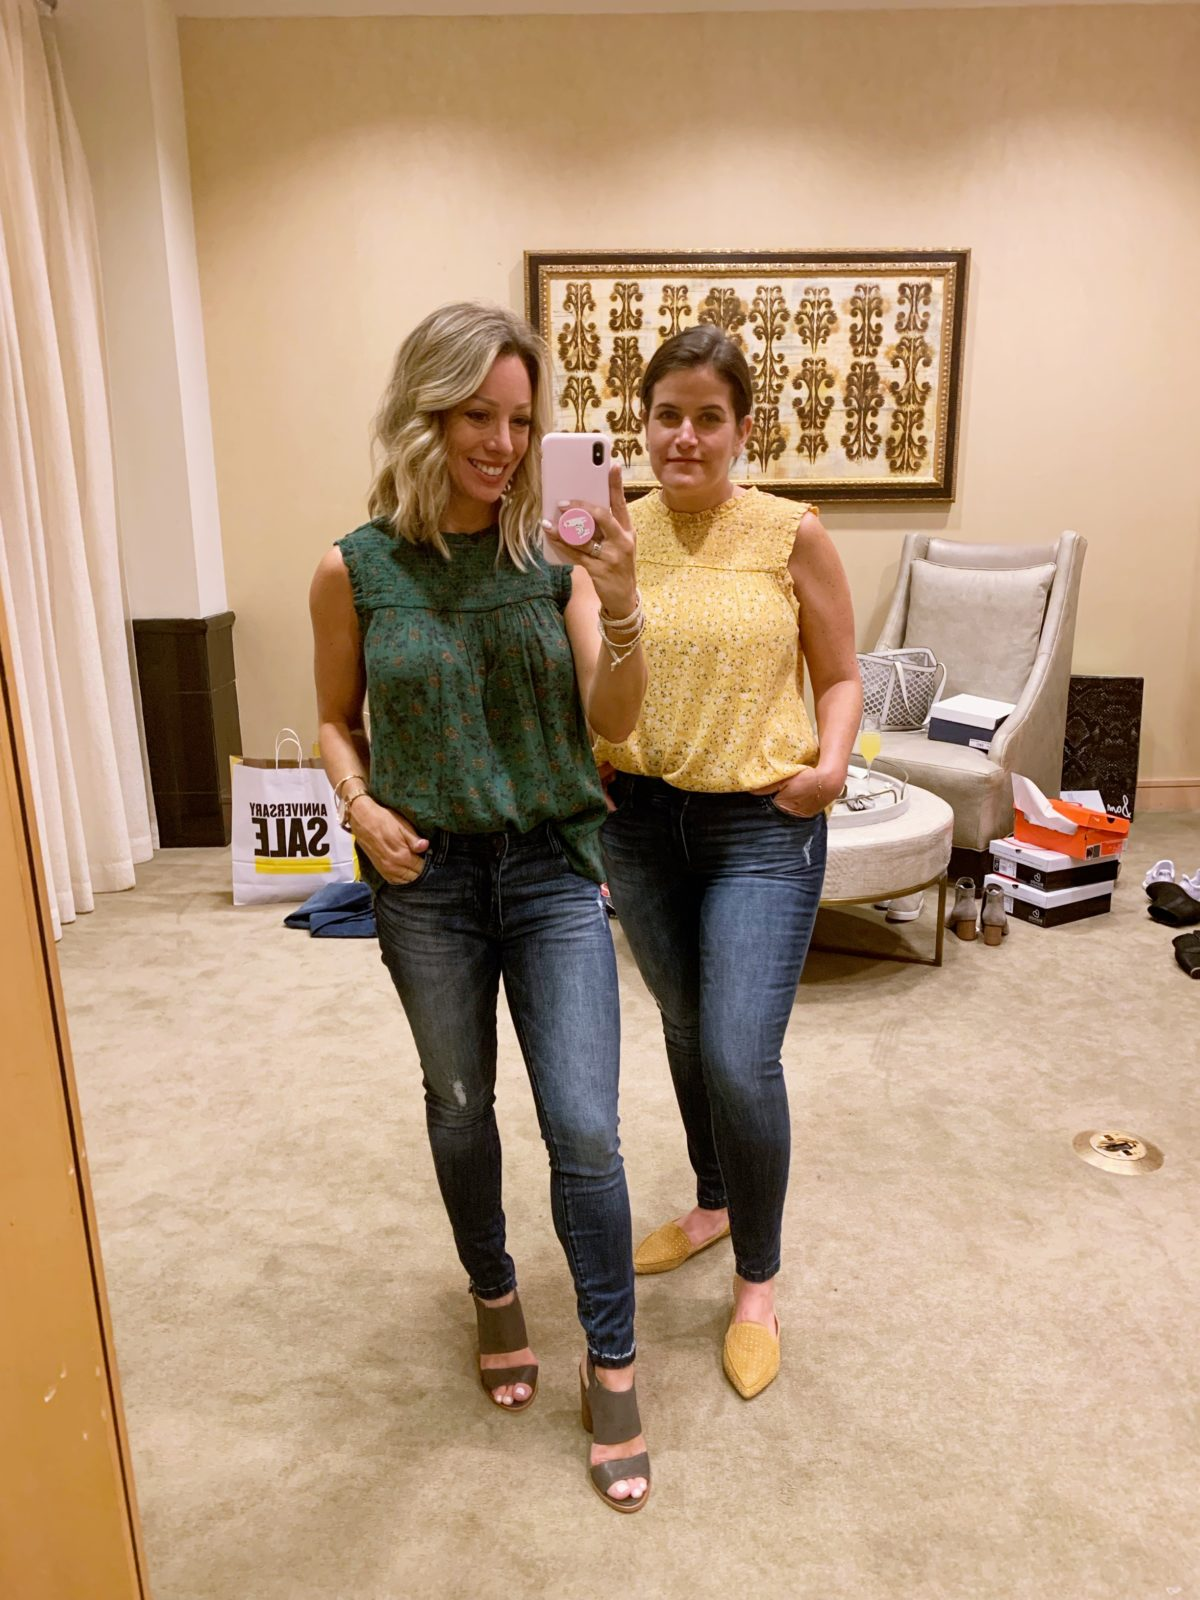 Nordstrom Anniversary Sale - dressing room try-on session with fit tips and sizing recommendations